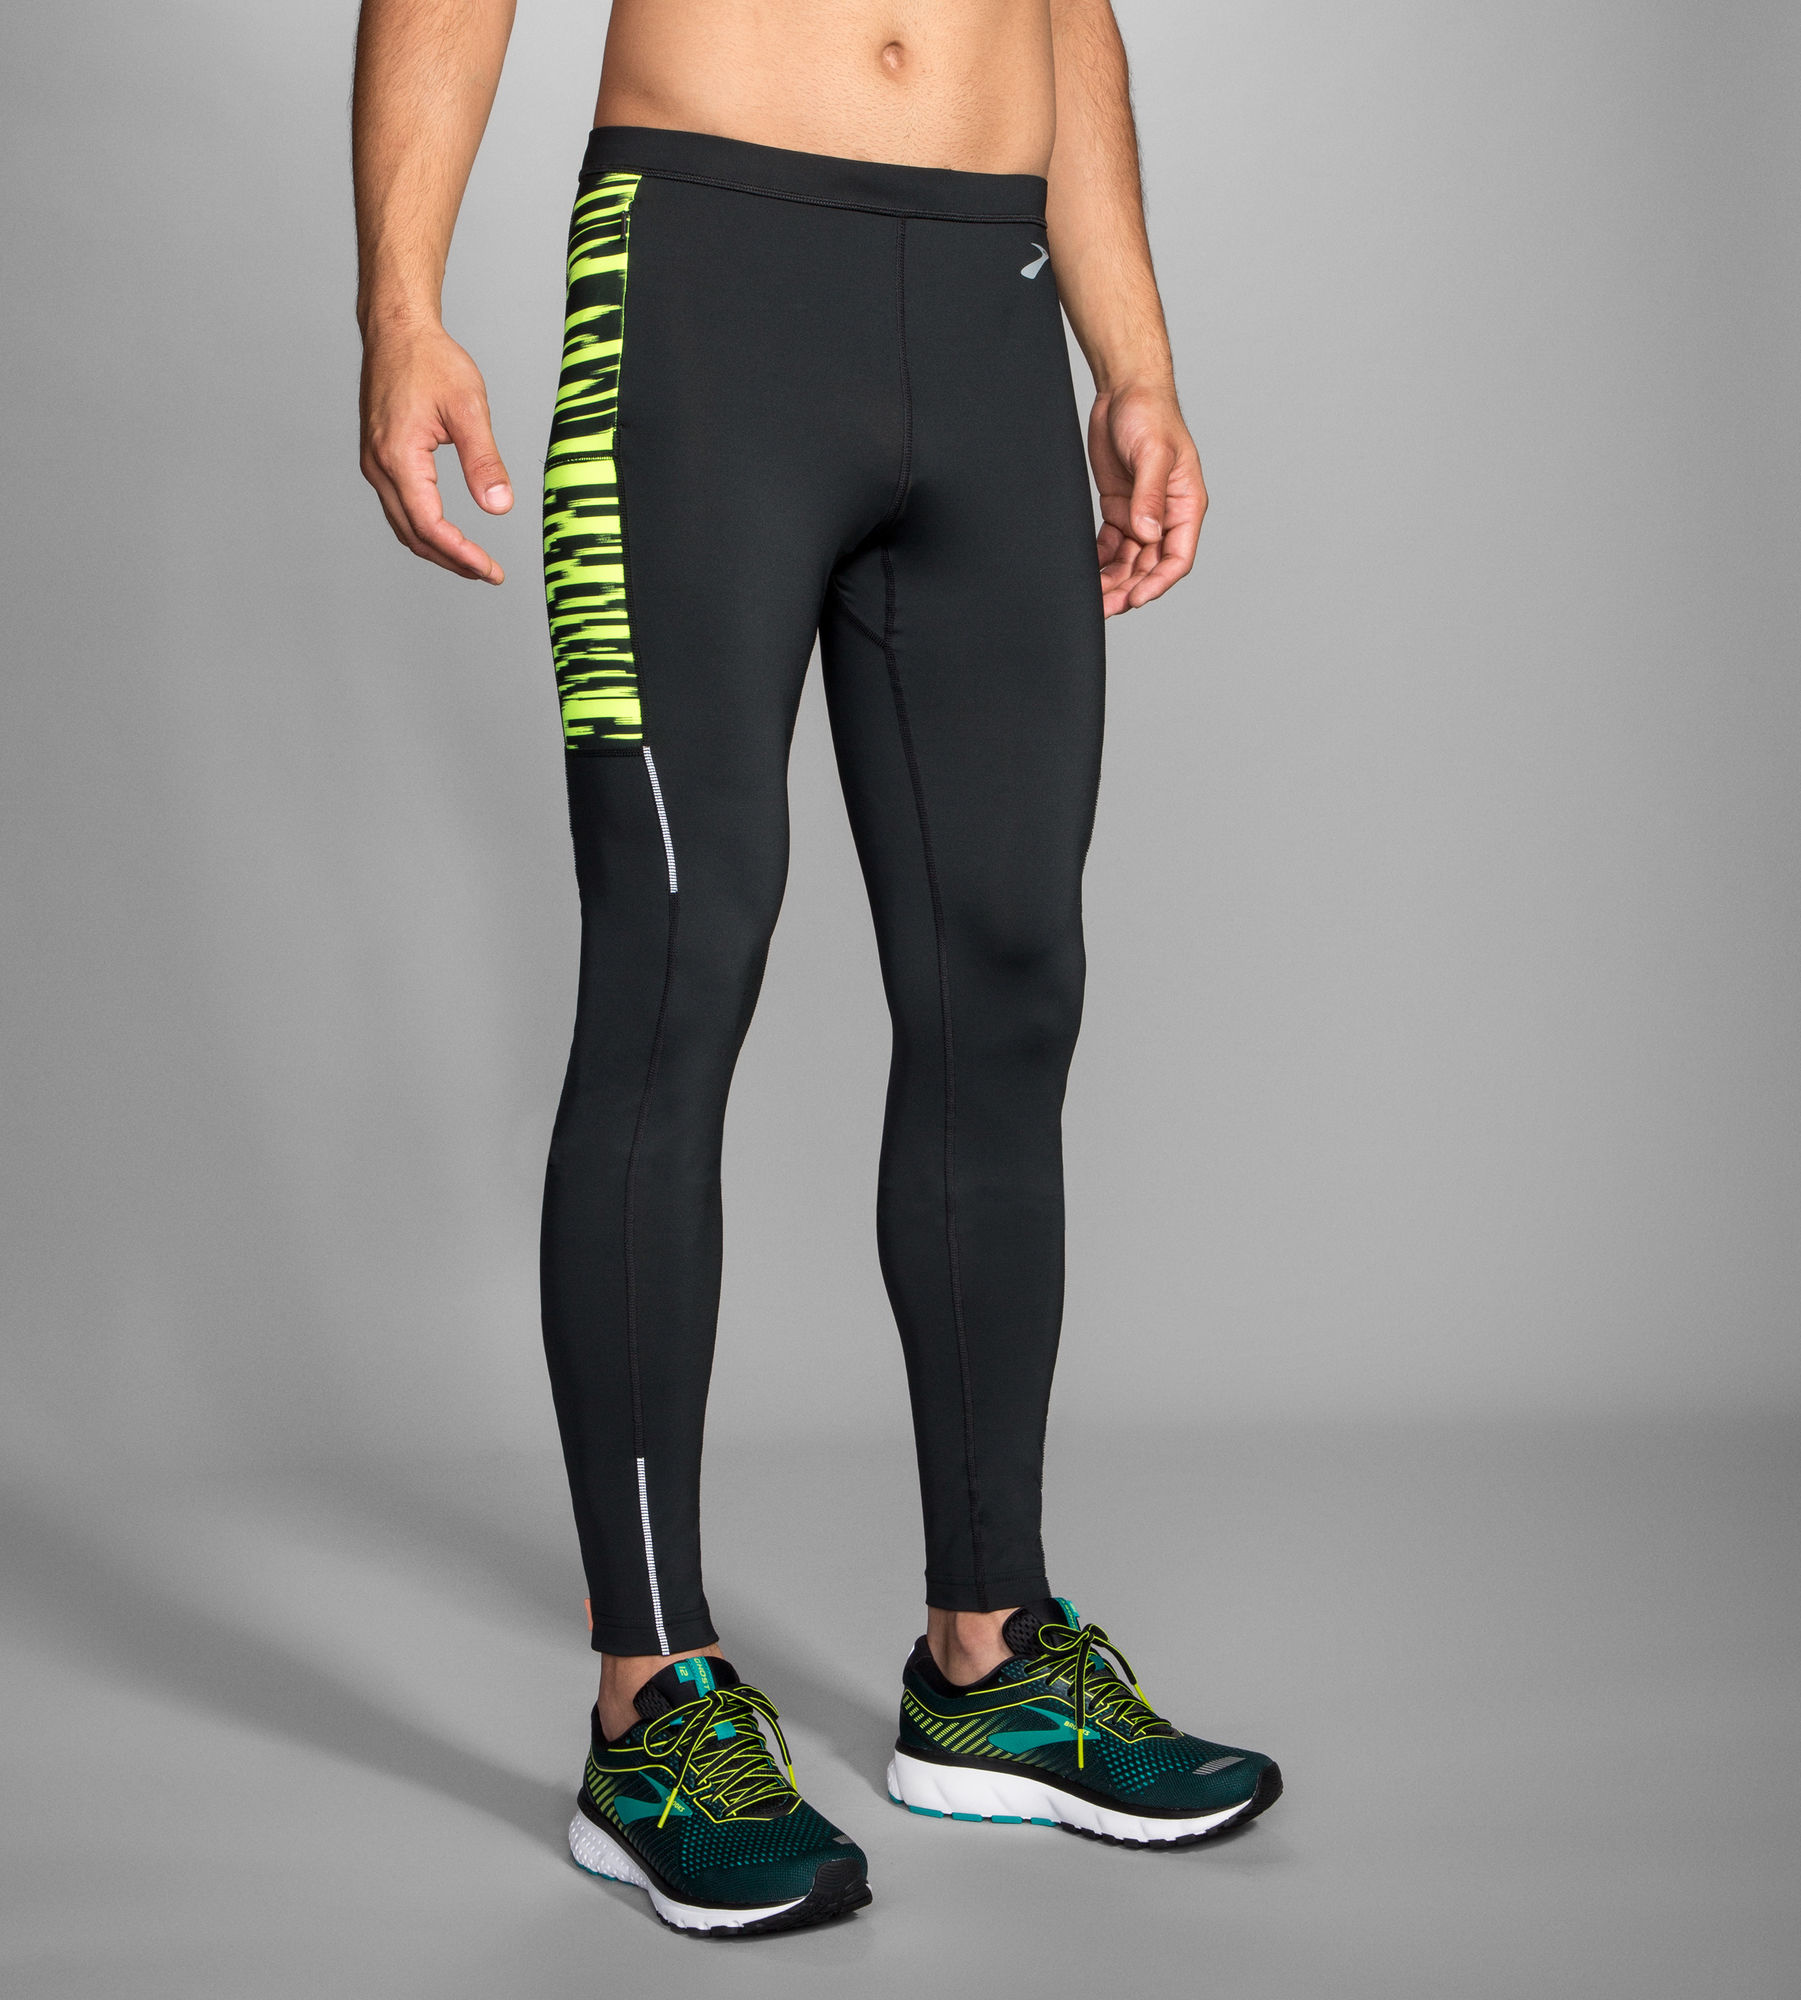 Brooks Nightlife Tight in Schwarz Gelb